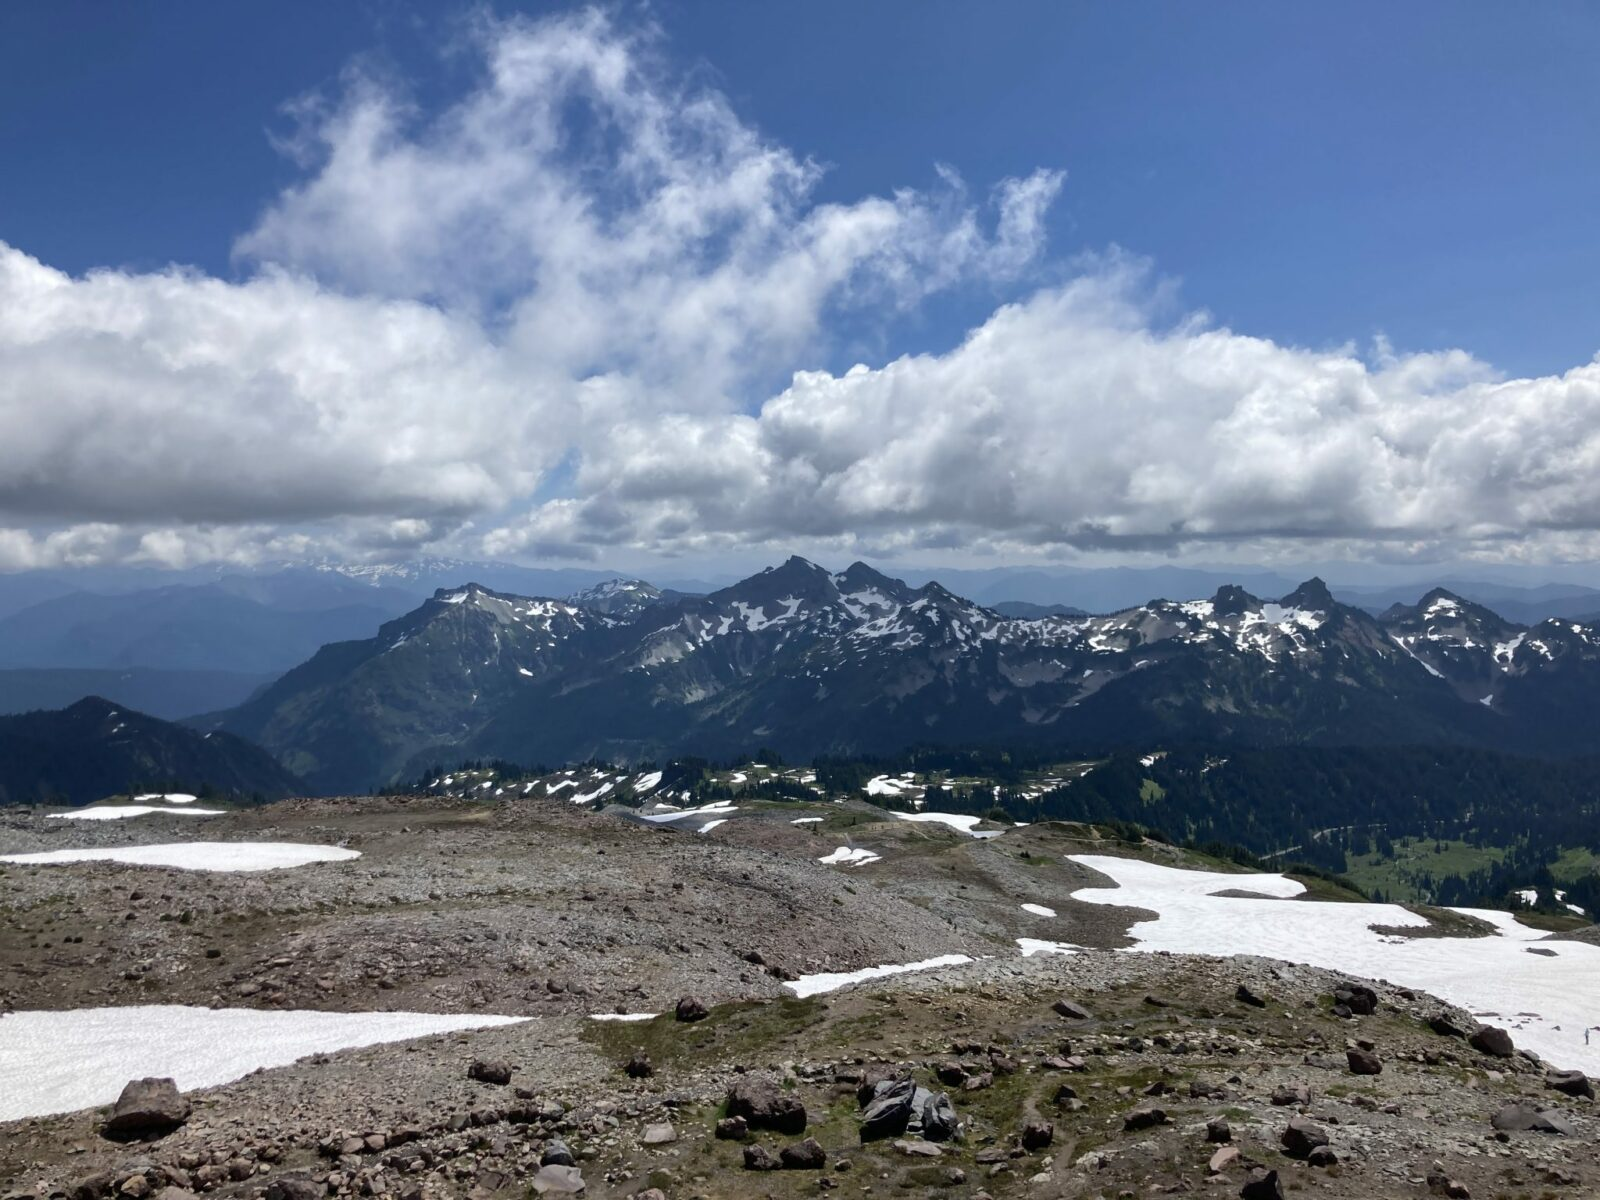 In the foreground, a volcanic landscape of brown rocks and a bit of late season snow along the Skyline Trail. In the background are a range of mountains with some snow still holding on. There are broken clouds against a blue sky.